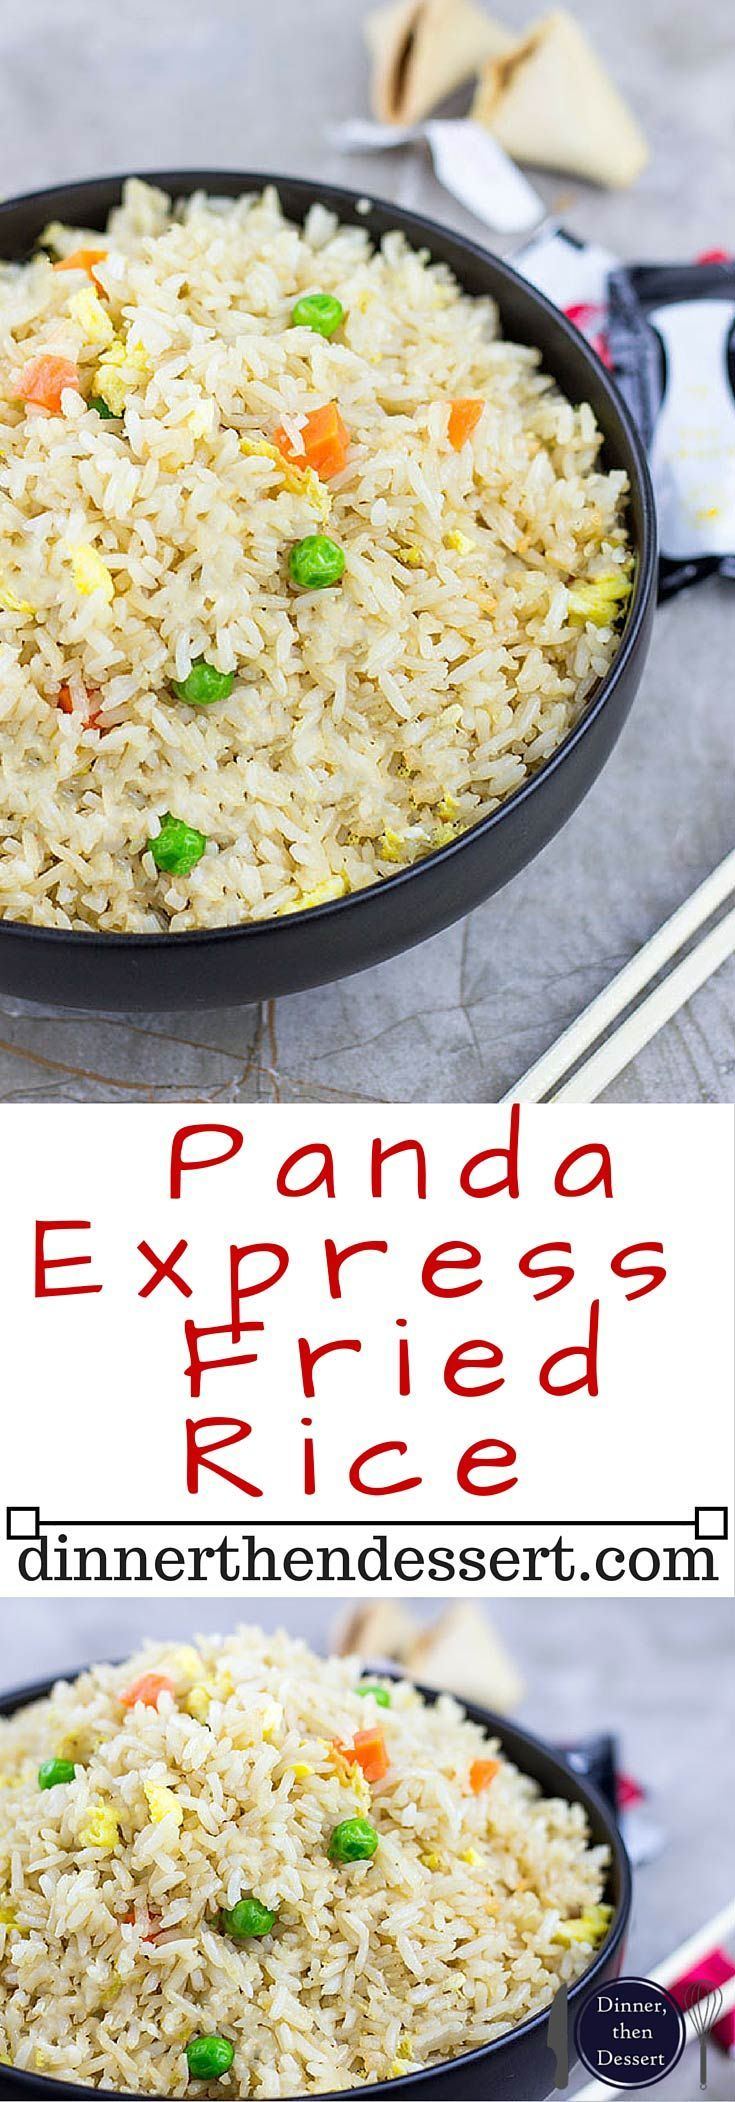 Express Fried Rice is the most popular side ordered and with good reason. Salty and savory, with veggies mixed in the rice is a great counterpart to your favorite two entree plate...at home!